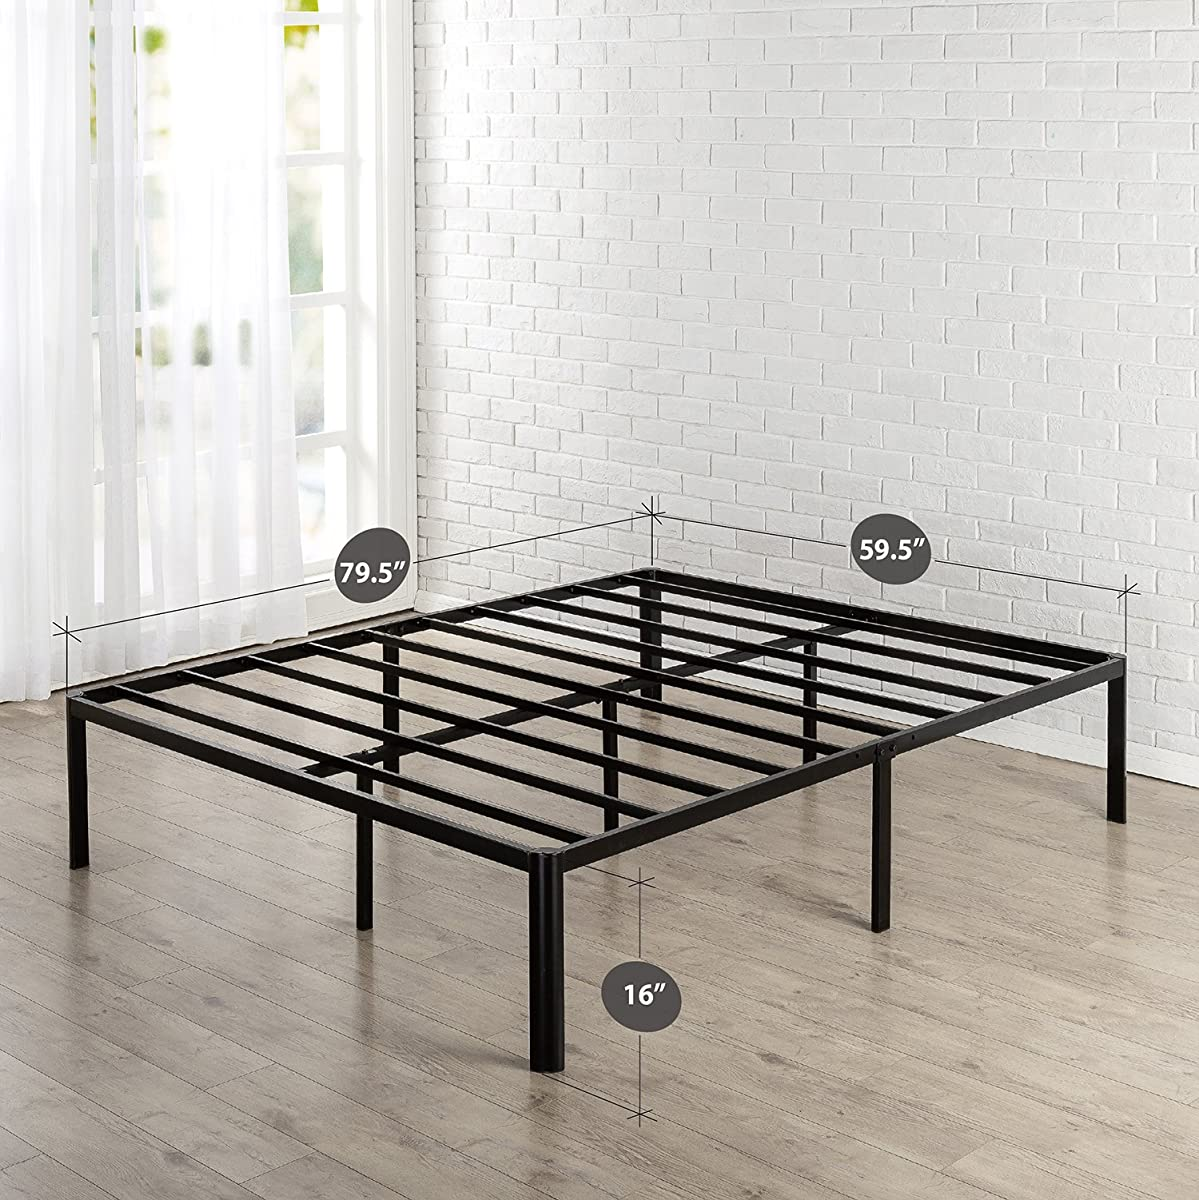 Zinus 16 Inch Metal Platform Bed Frame with Steel Slat Support/Mattress Foundation, Queen